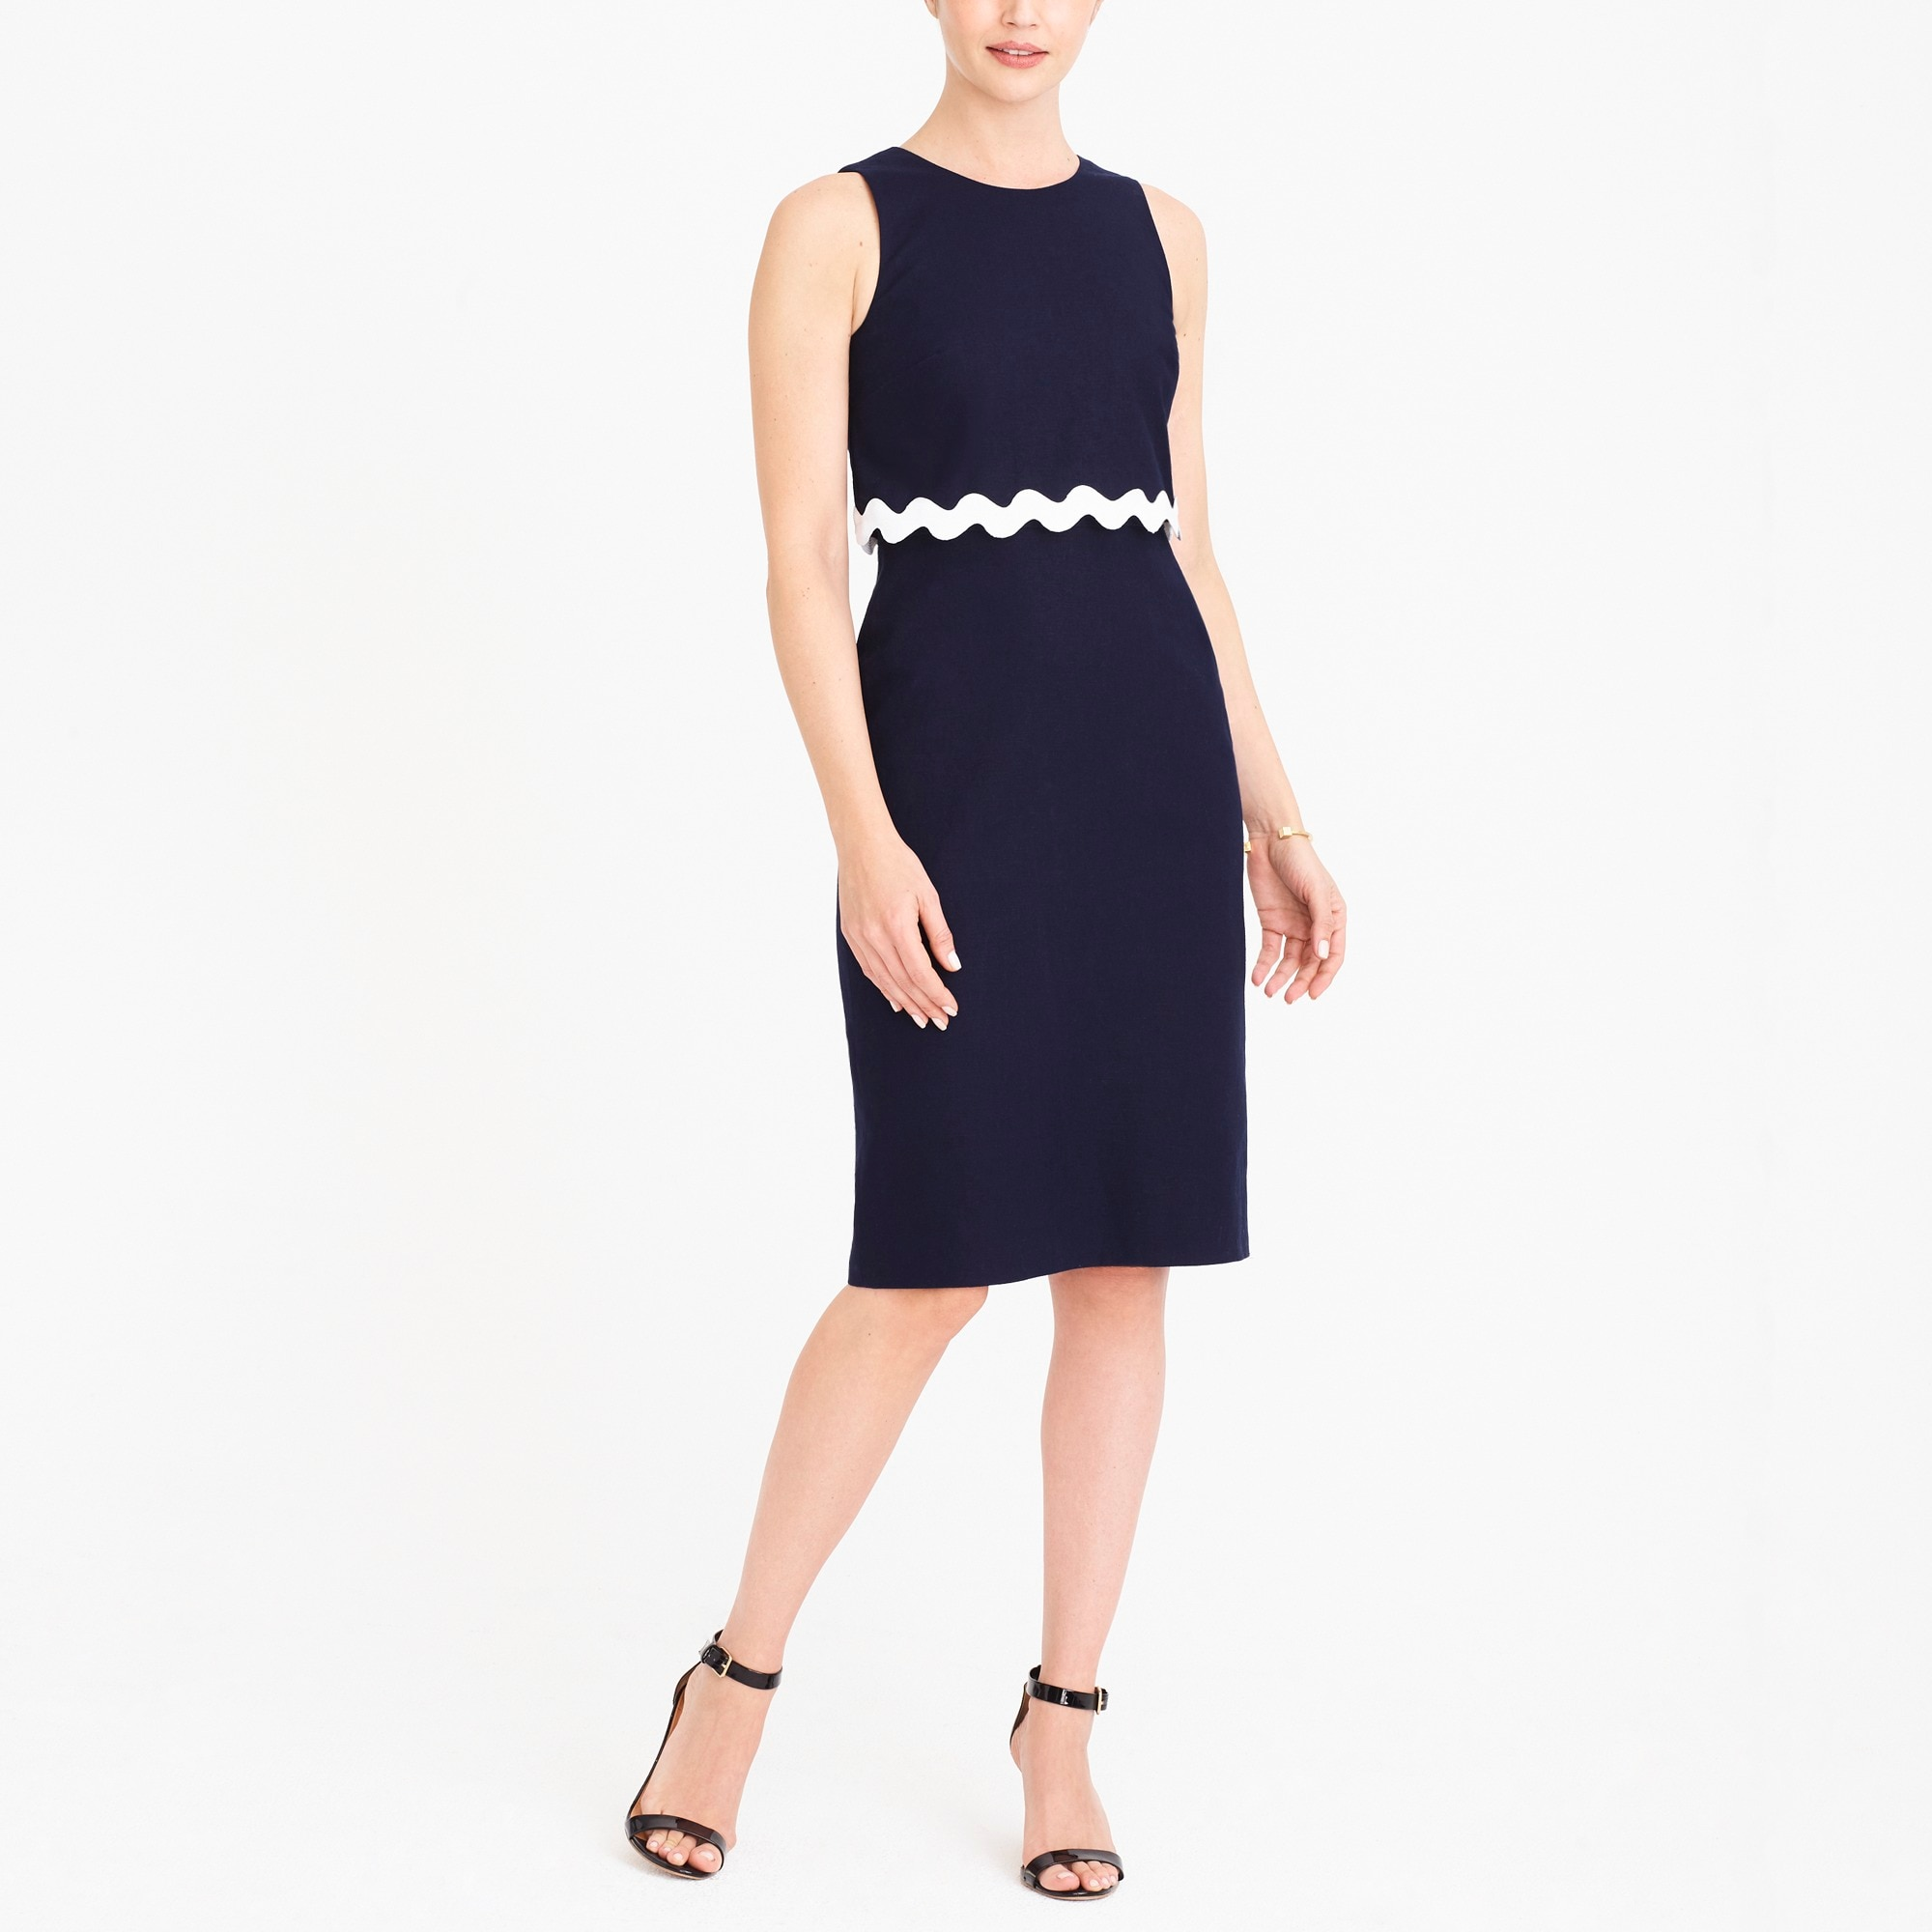 rickrack trim dress : factorywomen dresses